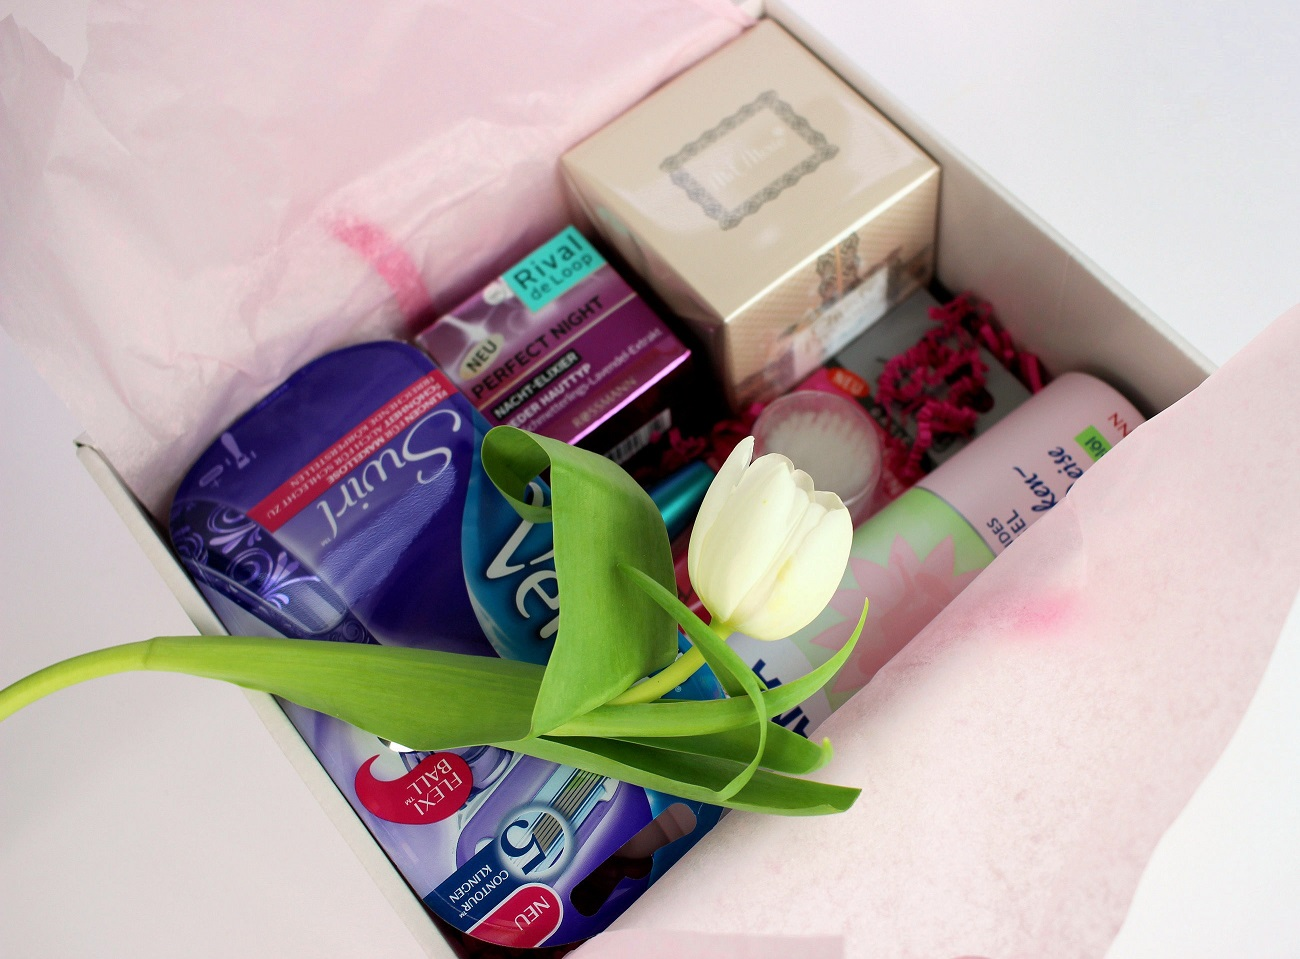 #sfmbox, 2016, beauty, box, drogerie, inhalt, märz, produkte, review, rossmann, schön für mich, for your beauty, isana, gillette, rival de loop, max factor, alterra, mel merio, venus swirl, rasierer,